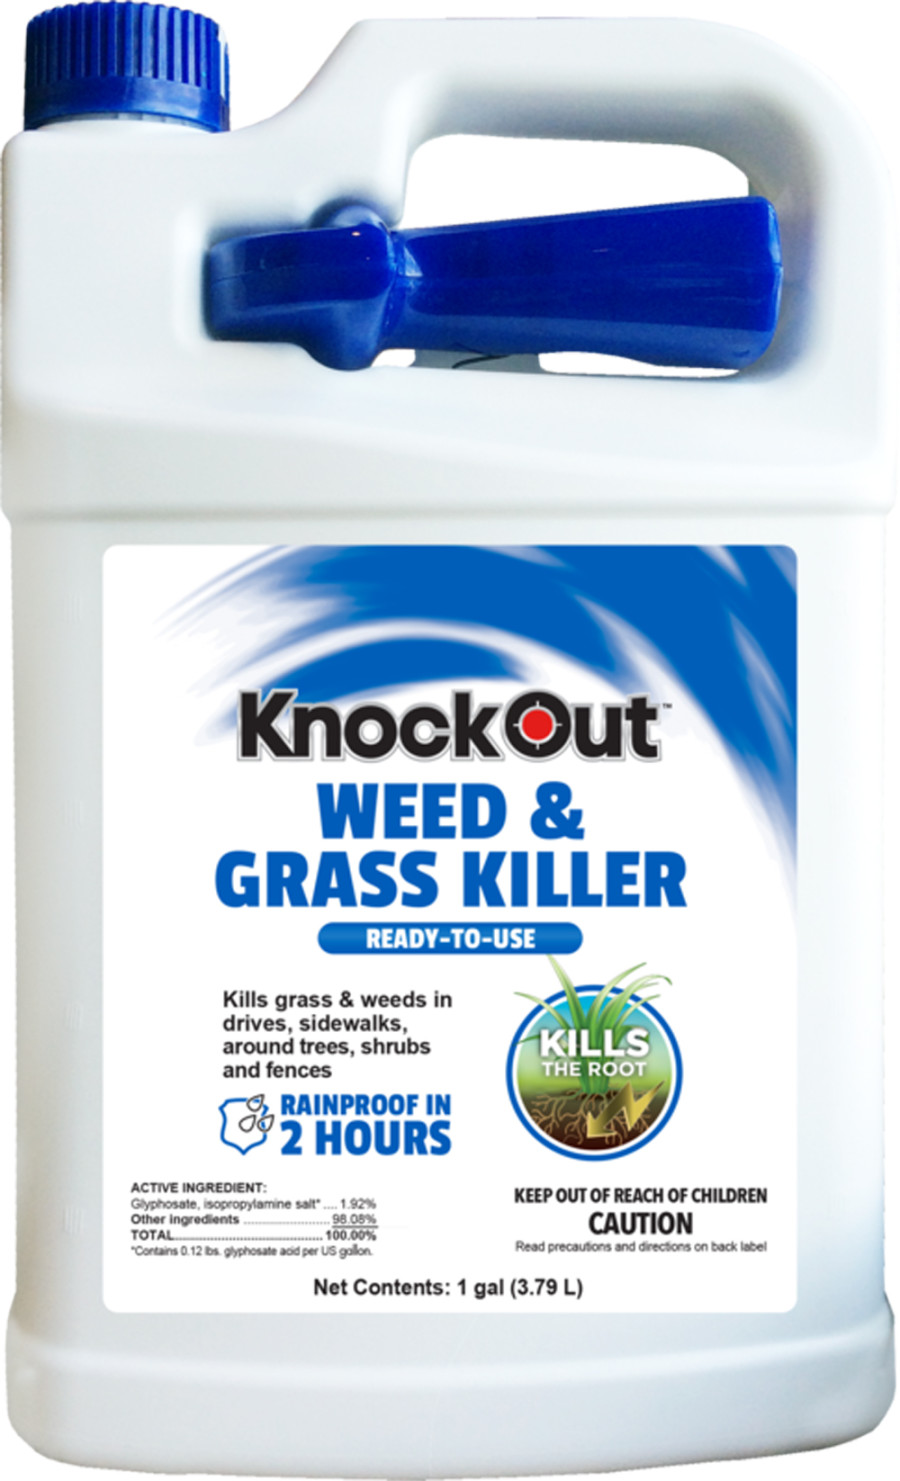 Knockout Weed & Grass Killer Ready To Use